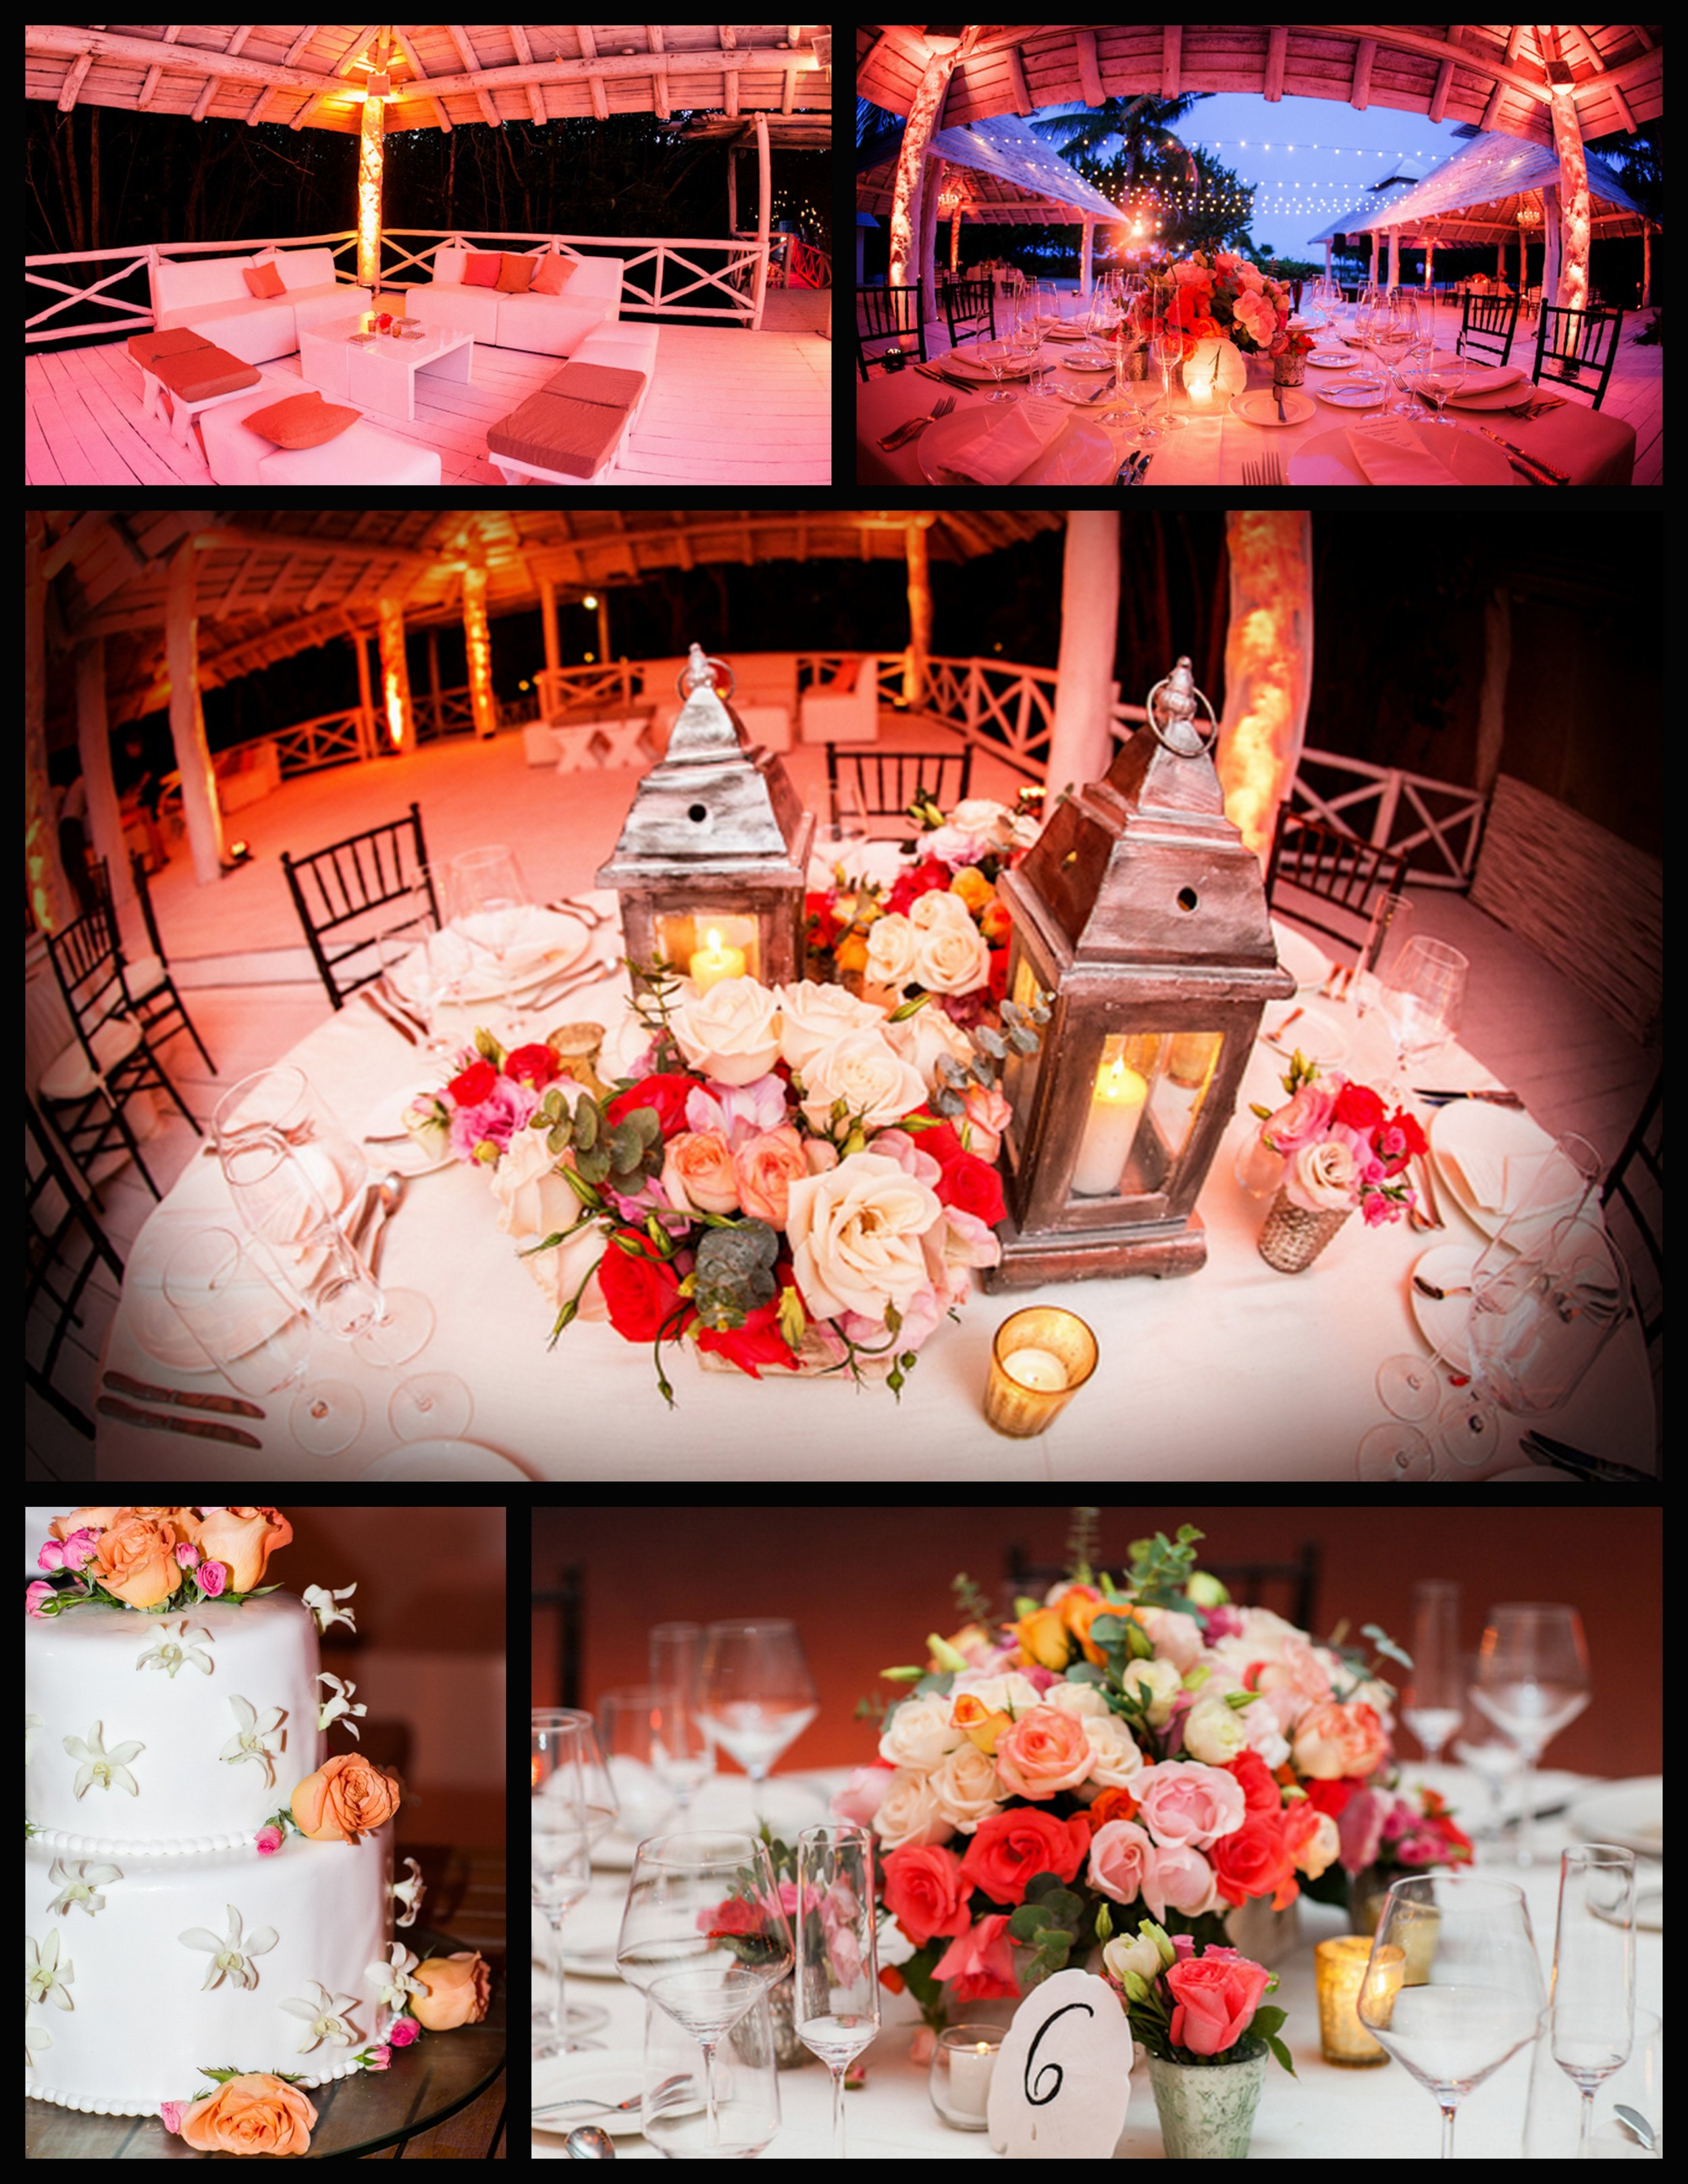 lounge seating, beachfront reception, table lanterns, undone floral centerpieces